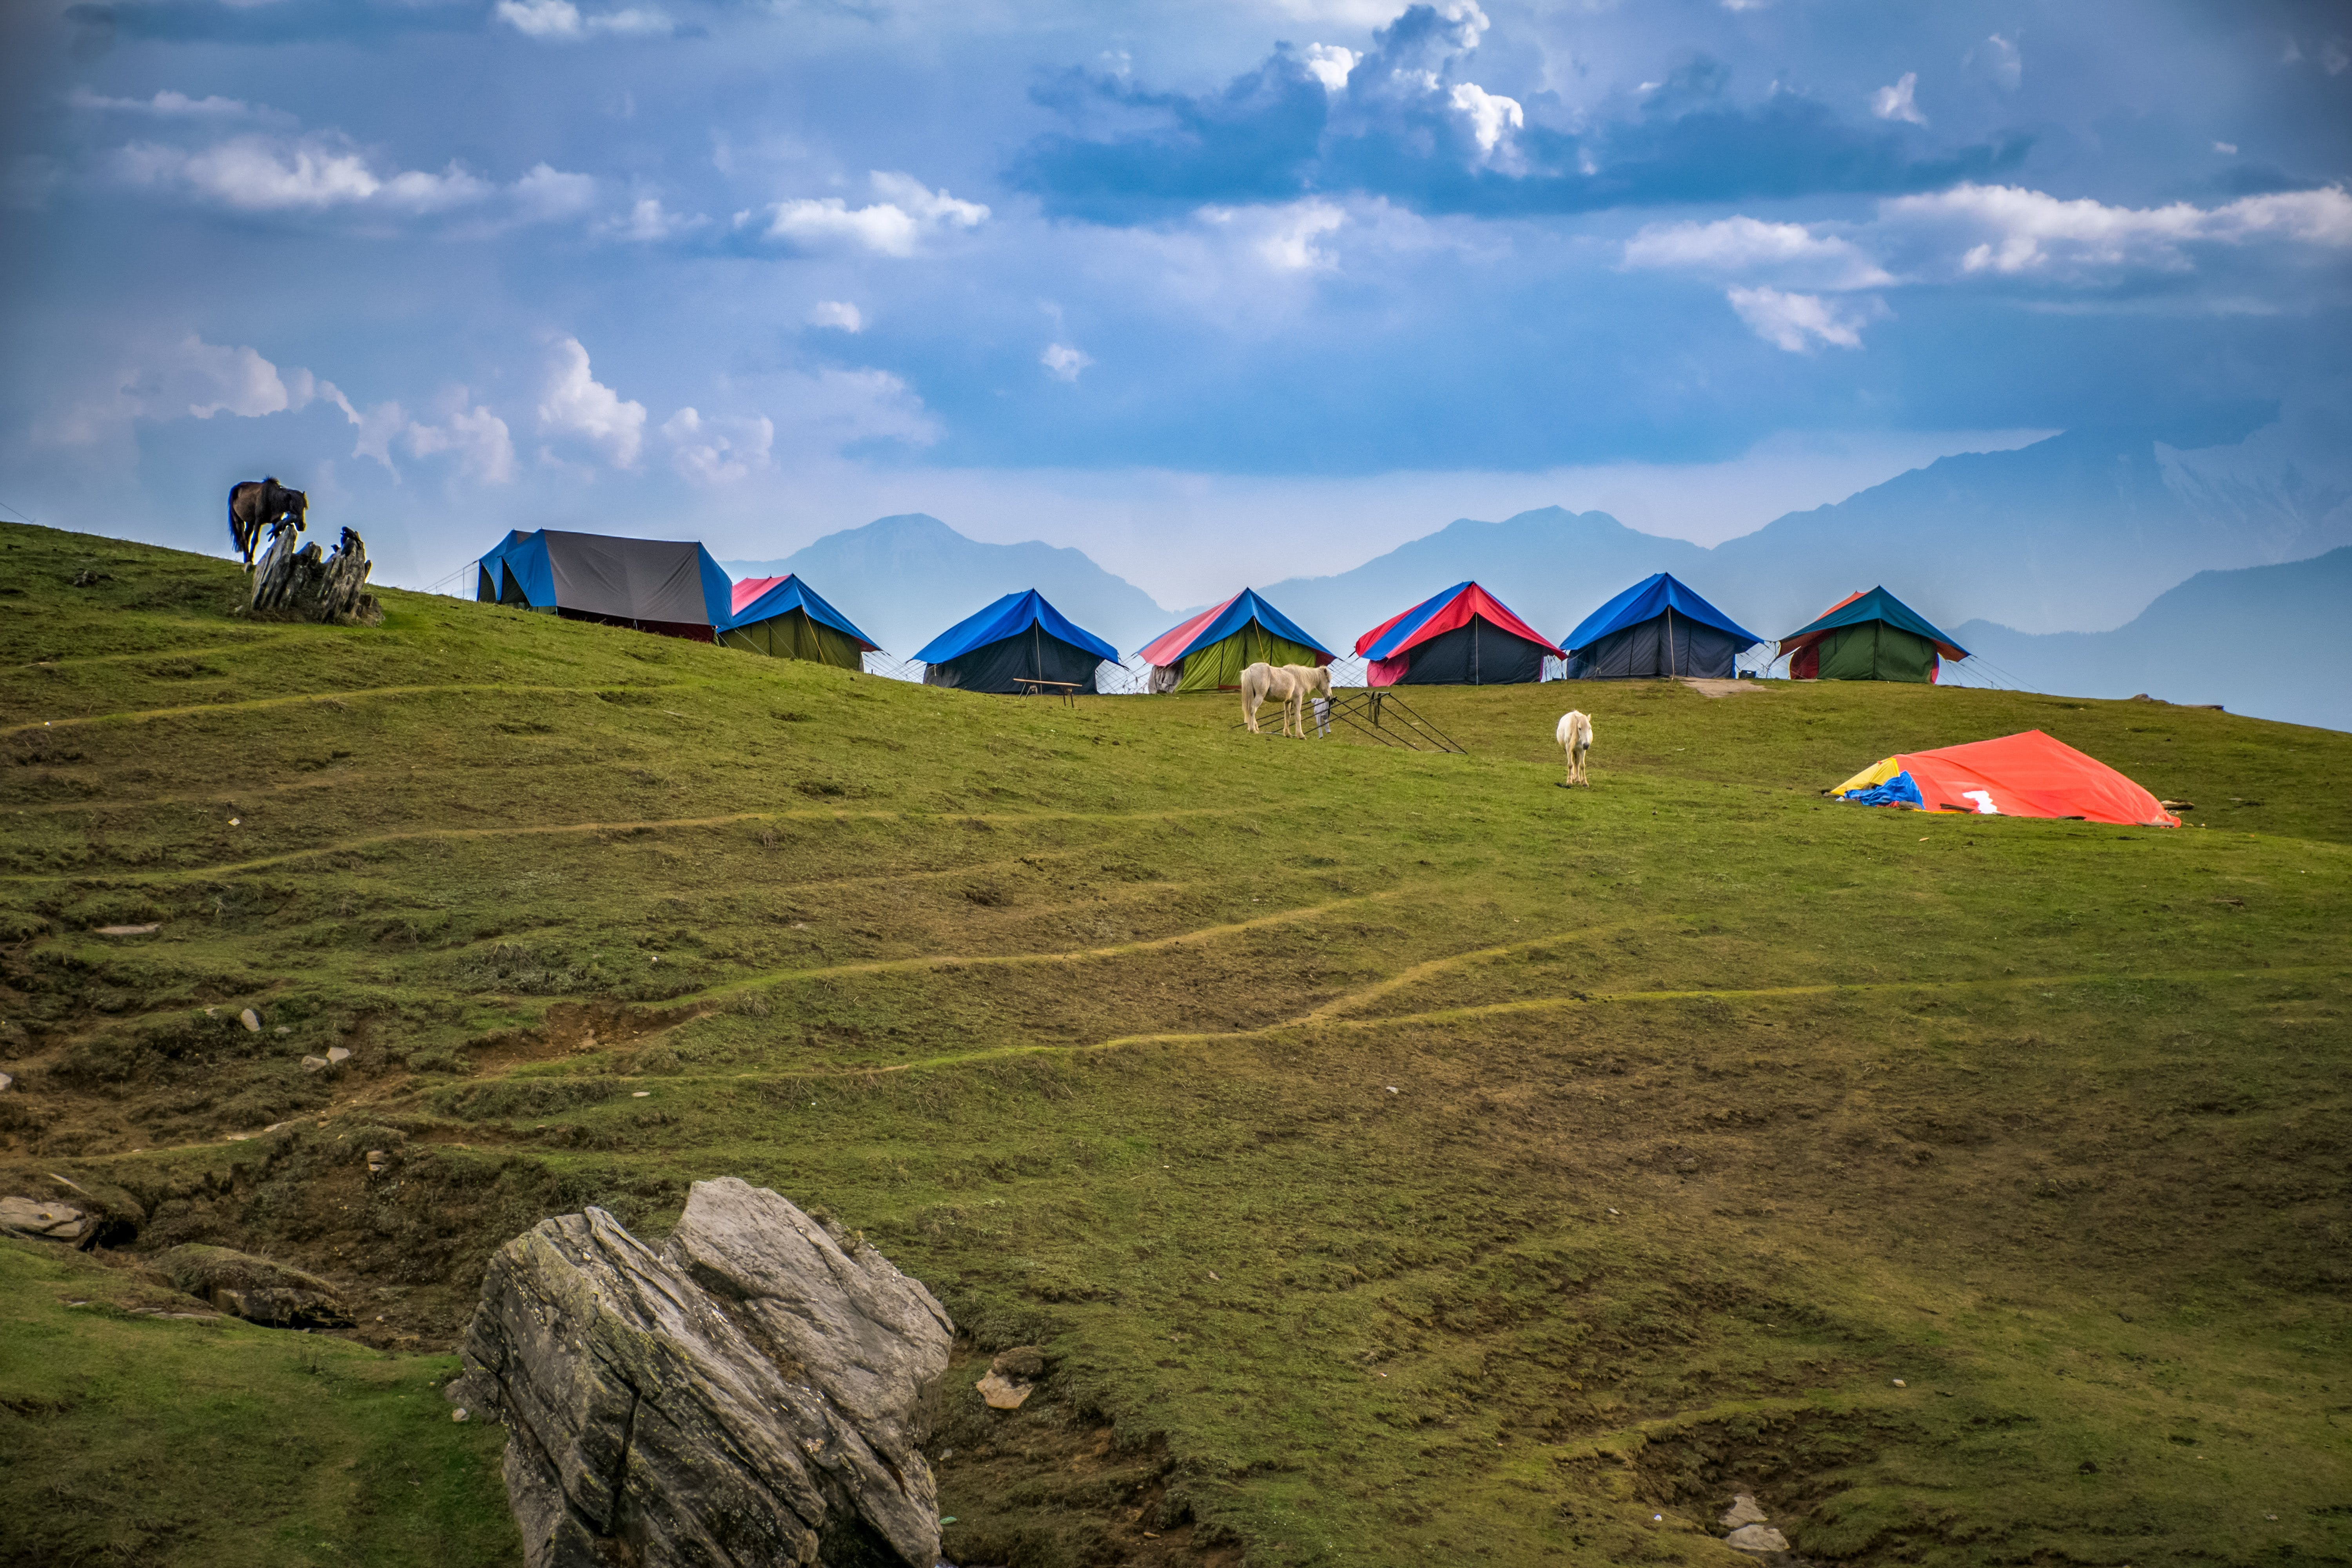 Photographed of Lined Tents on Green Grass Hills